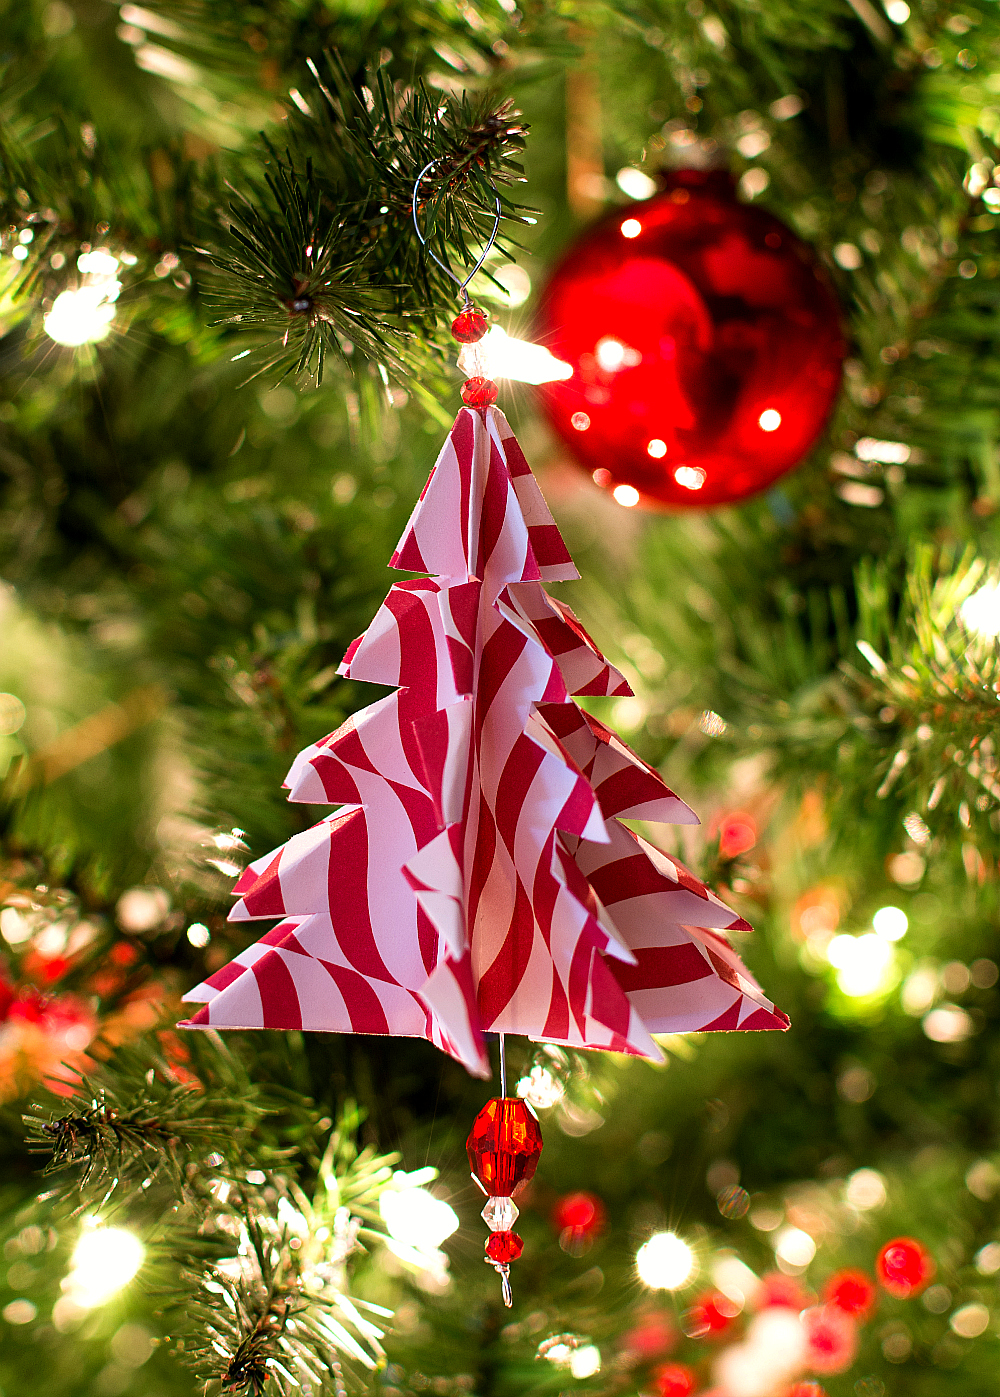 Christmas Craft Ideas Handmade Ornament With Paper